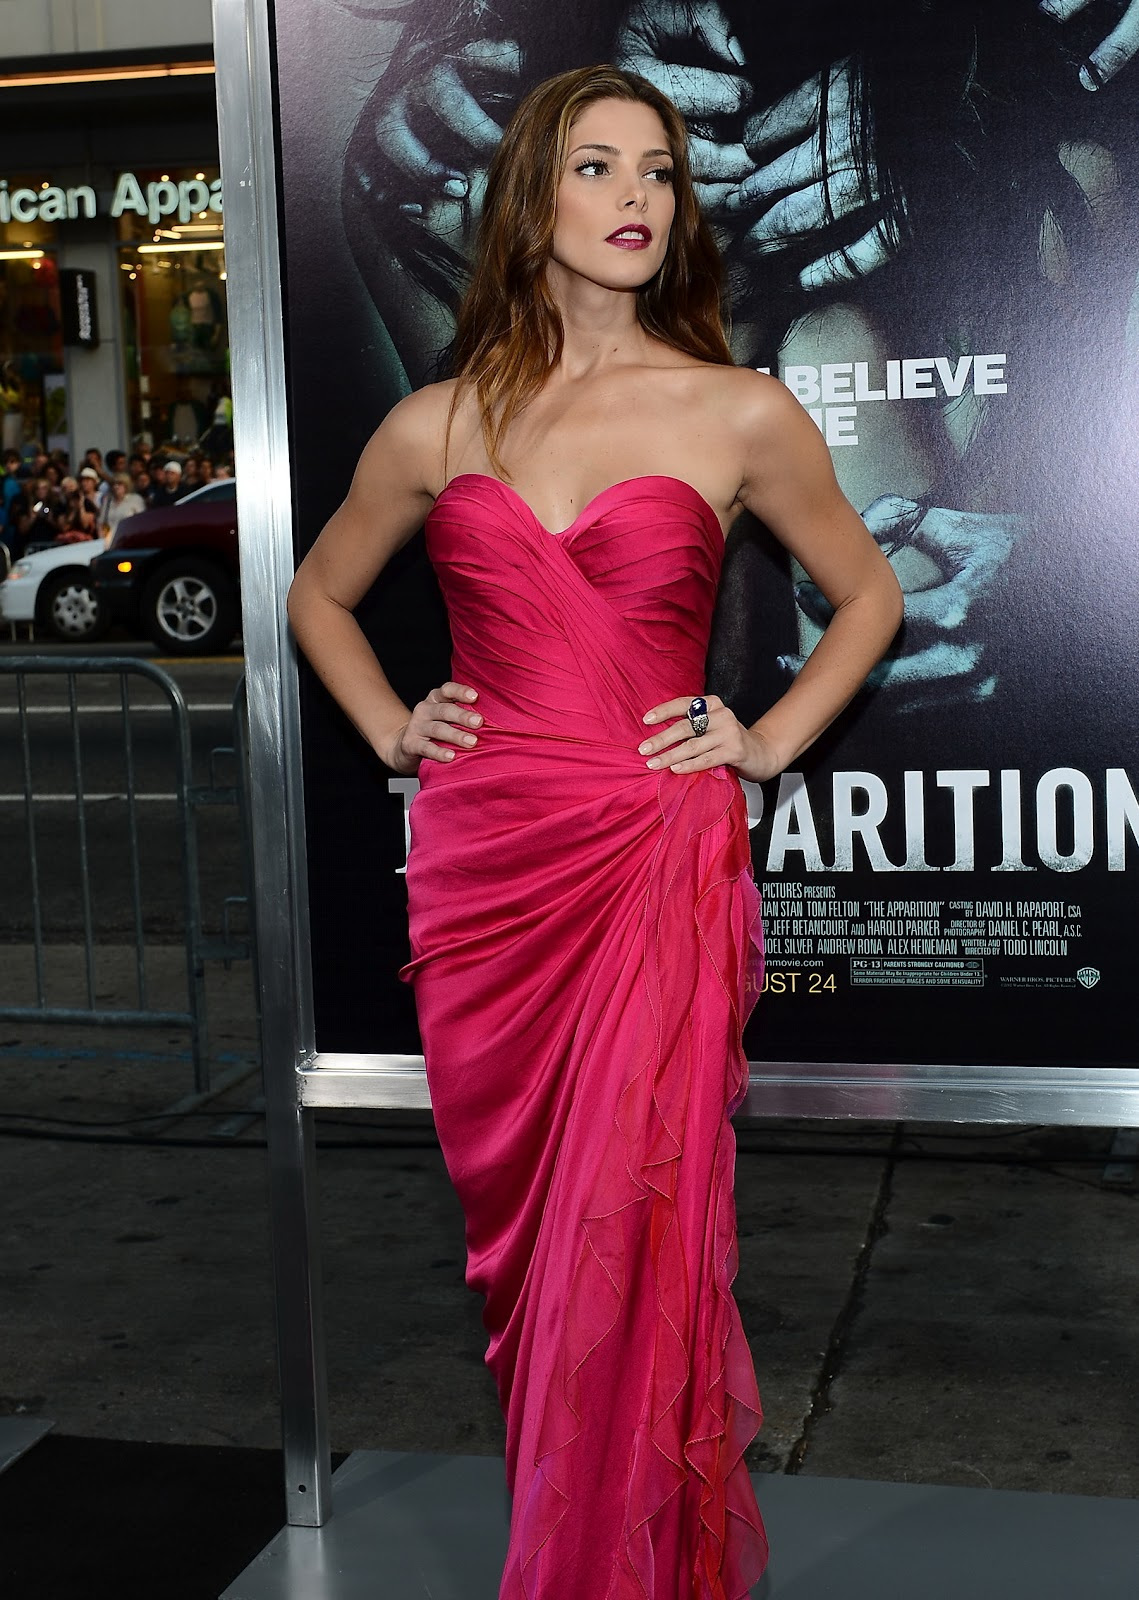 http://3.bp.blogspot.com/-y3teKmONmdU/UDdBu0UhEXI/AAAAAAAANIQ/M8plWizHgis/s1600/Ashley+Greene+attends+The+Apparition+premiere+in+Hollywood+on+August+24th+2012.jpg